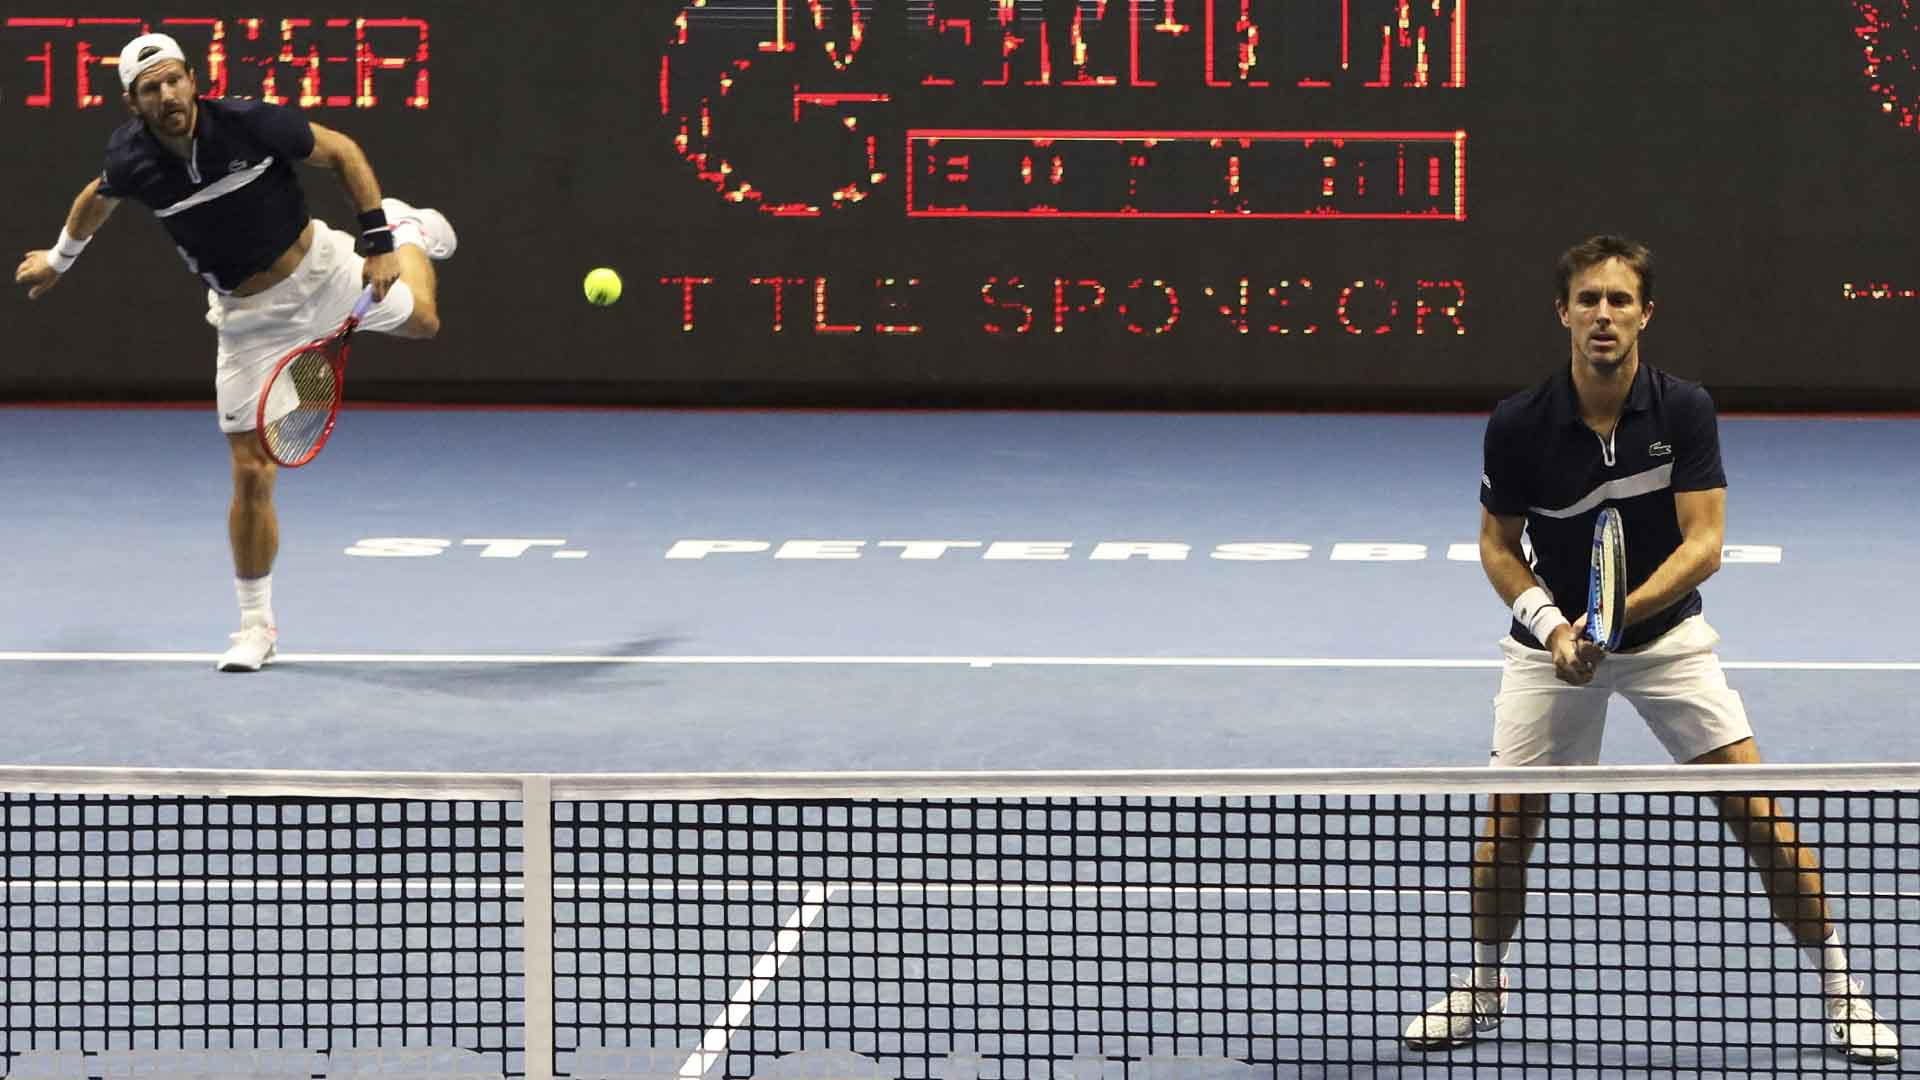 Jurgen Melzer and Edouard Roger-Vasselin beat Ben McLachlan and Franko Skugor to reach the St. Petersburg Open final.